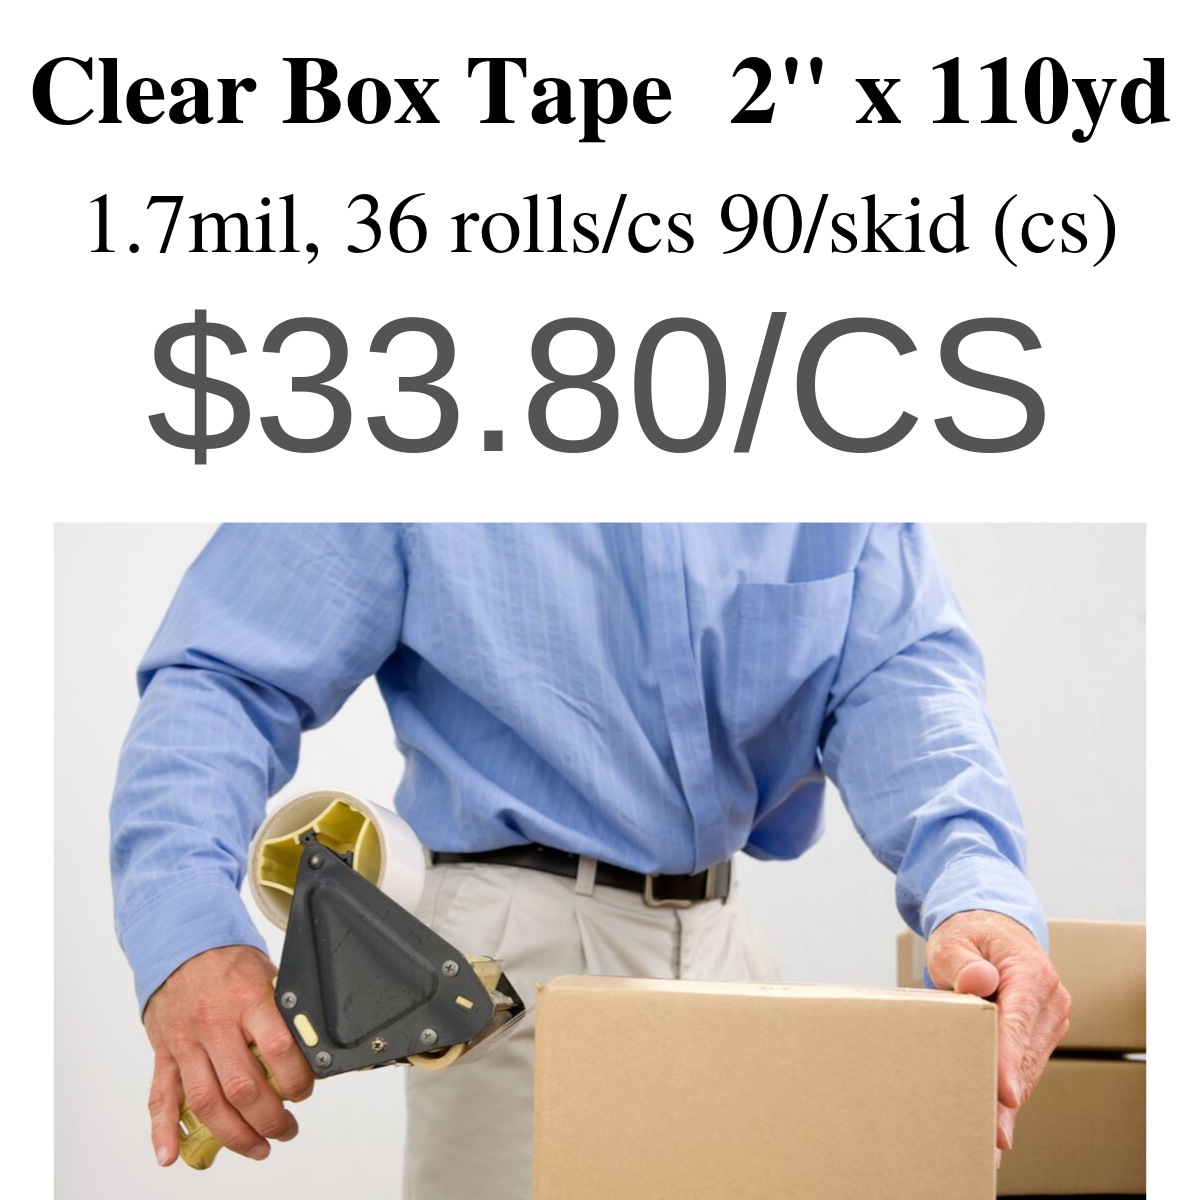 Clear box tape, special